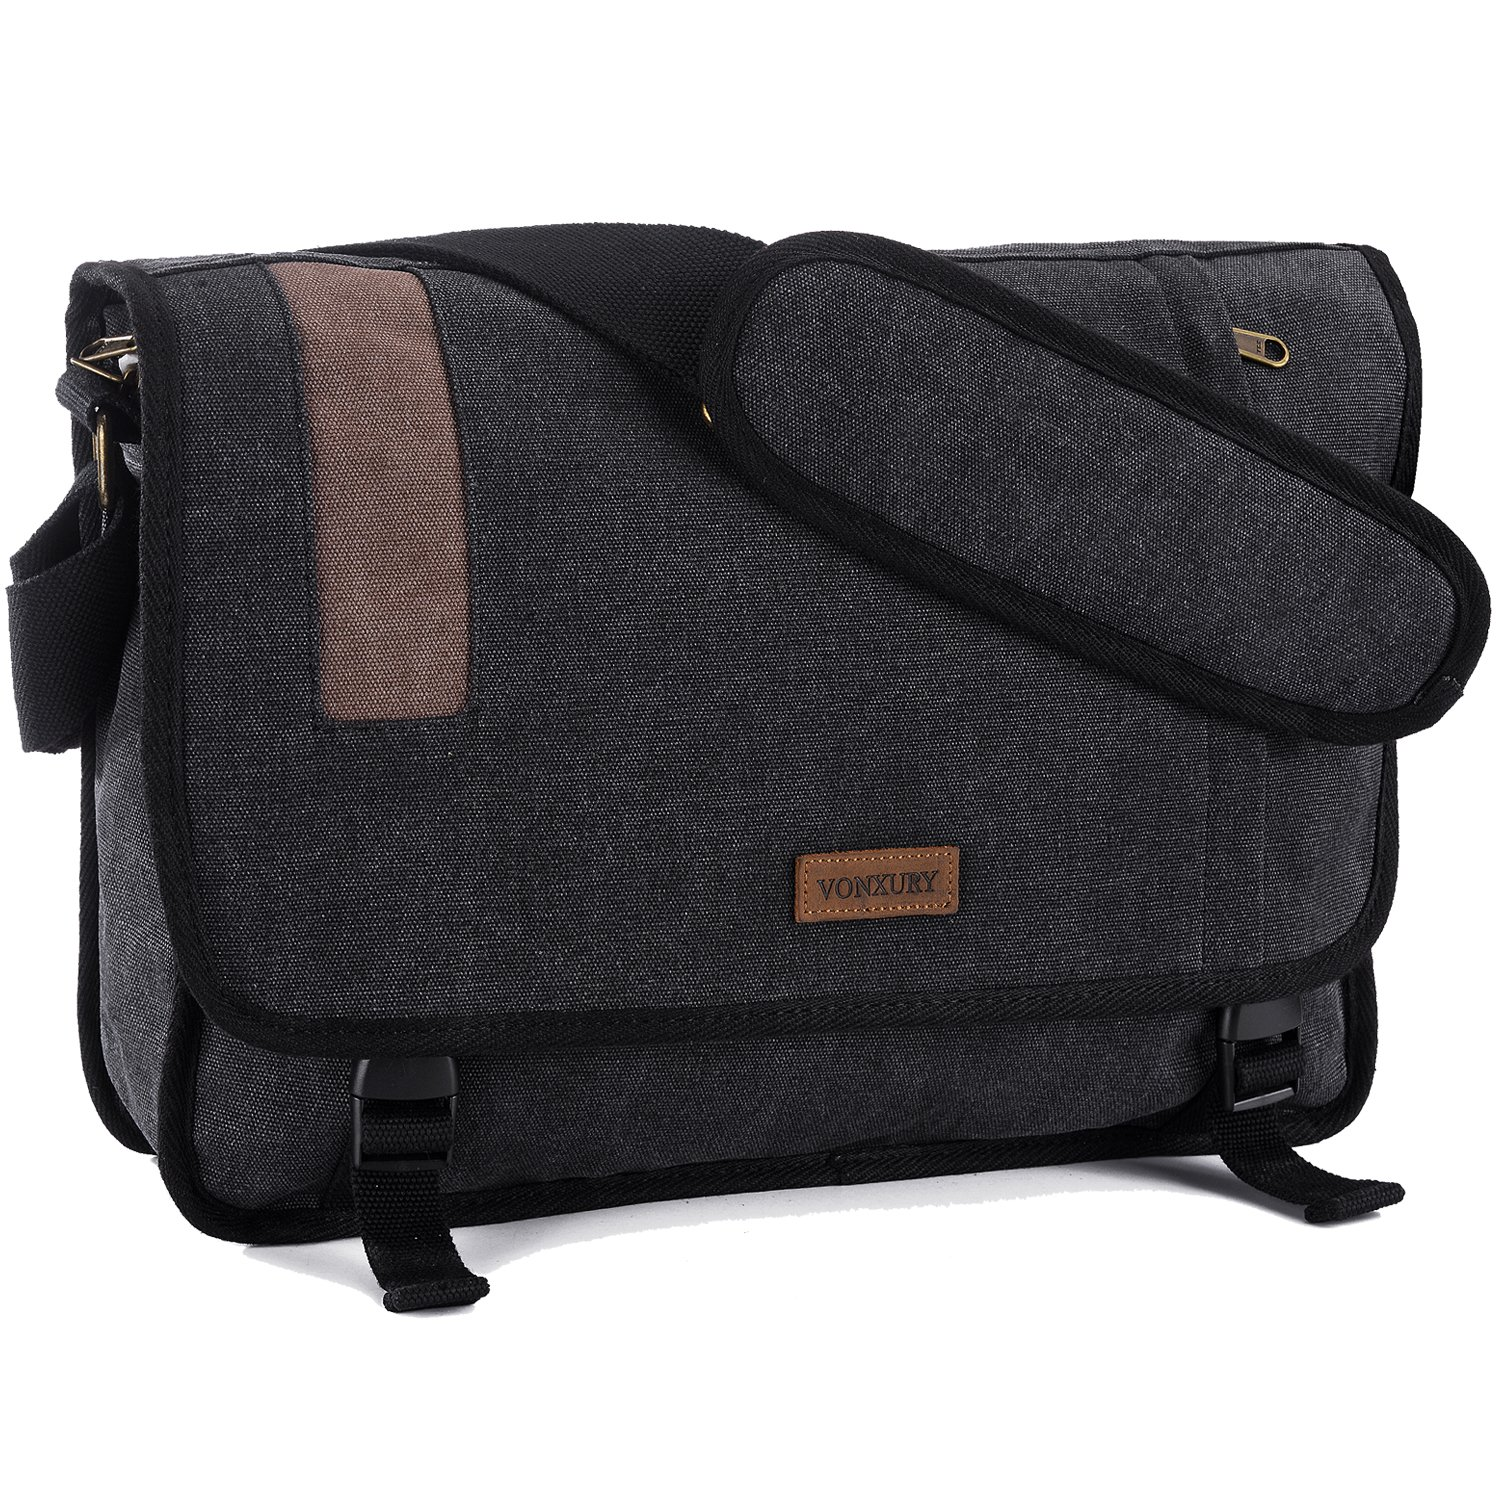 0eb67ef42109 Canvas Messenger Bag Retro 15 inch Laptop Shoulder Bag for men by VX Vonxury